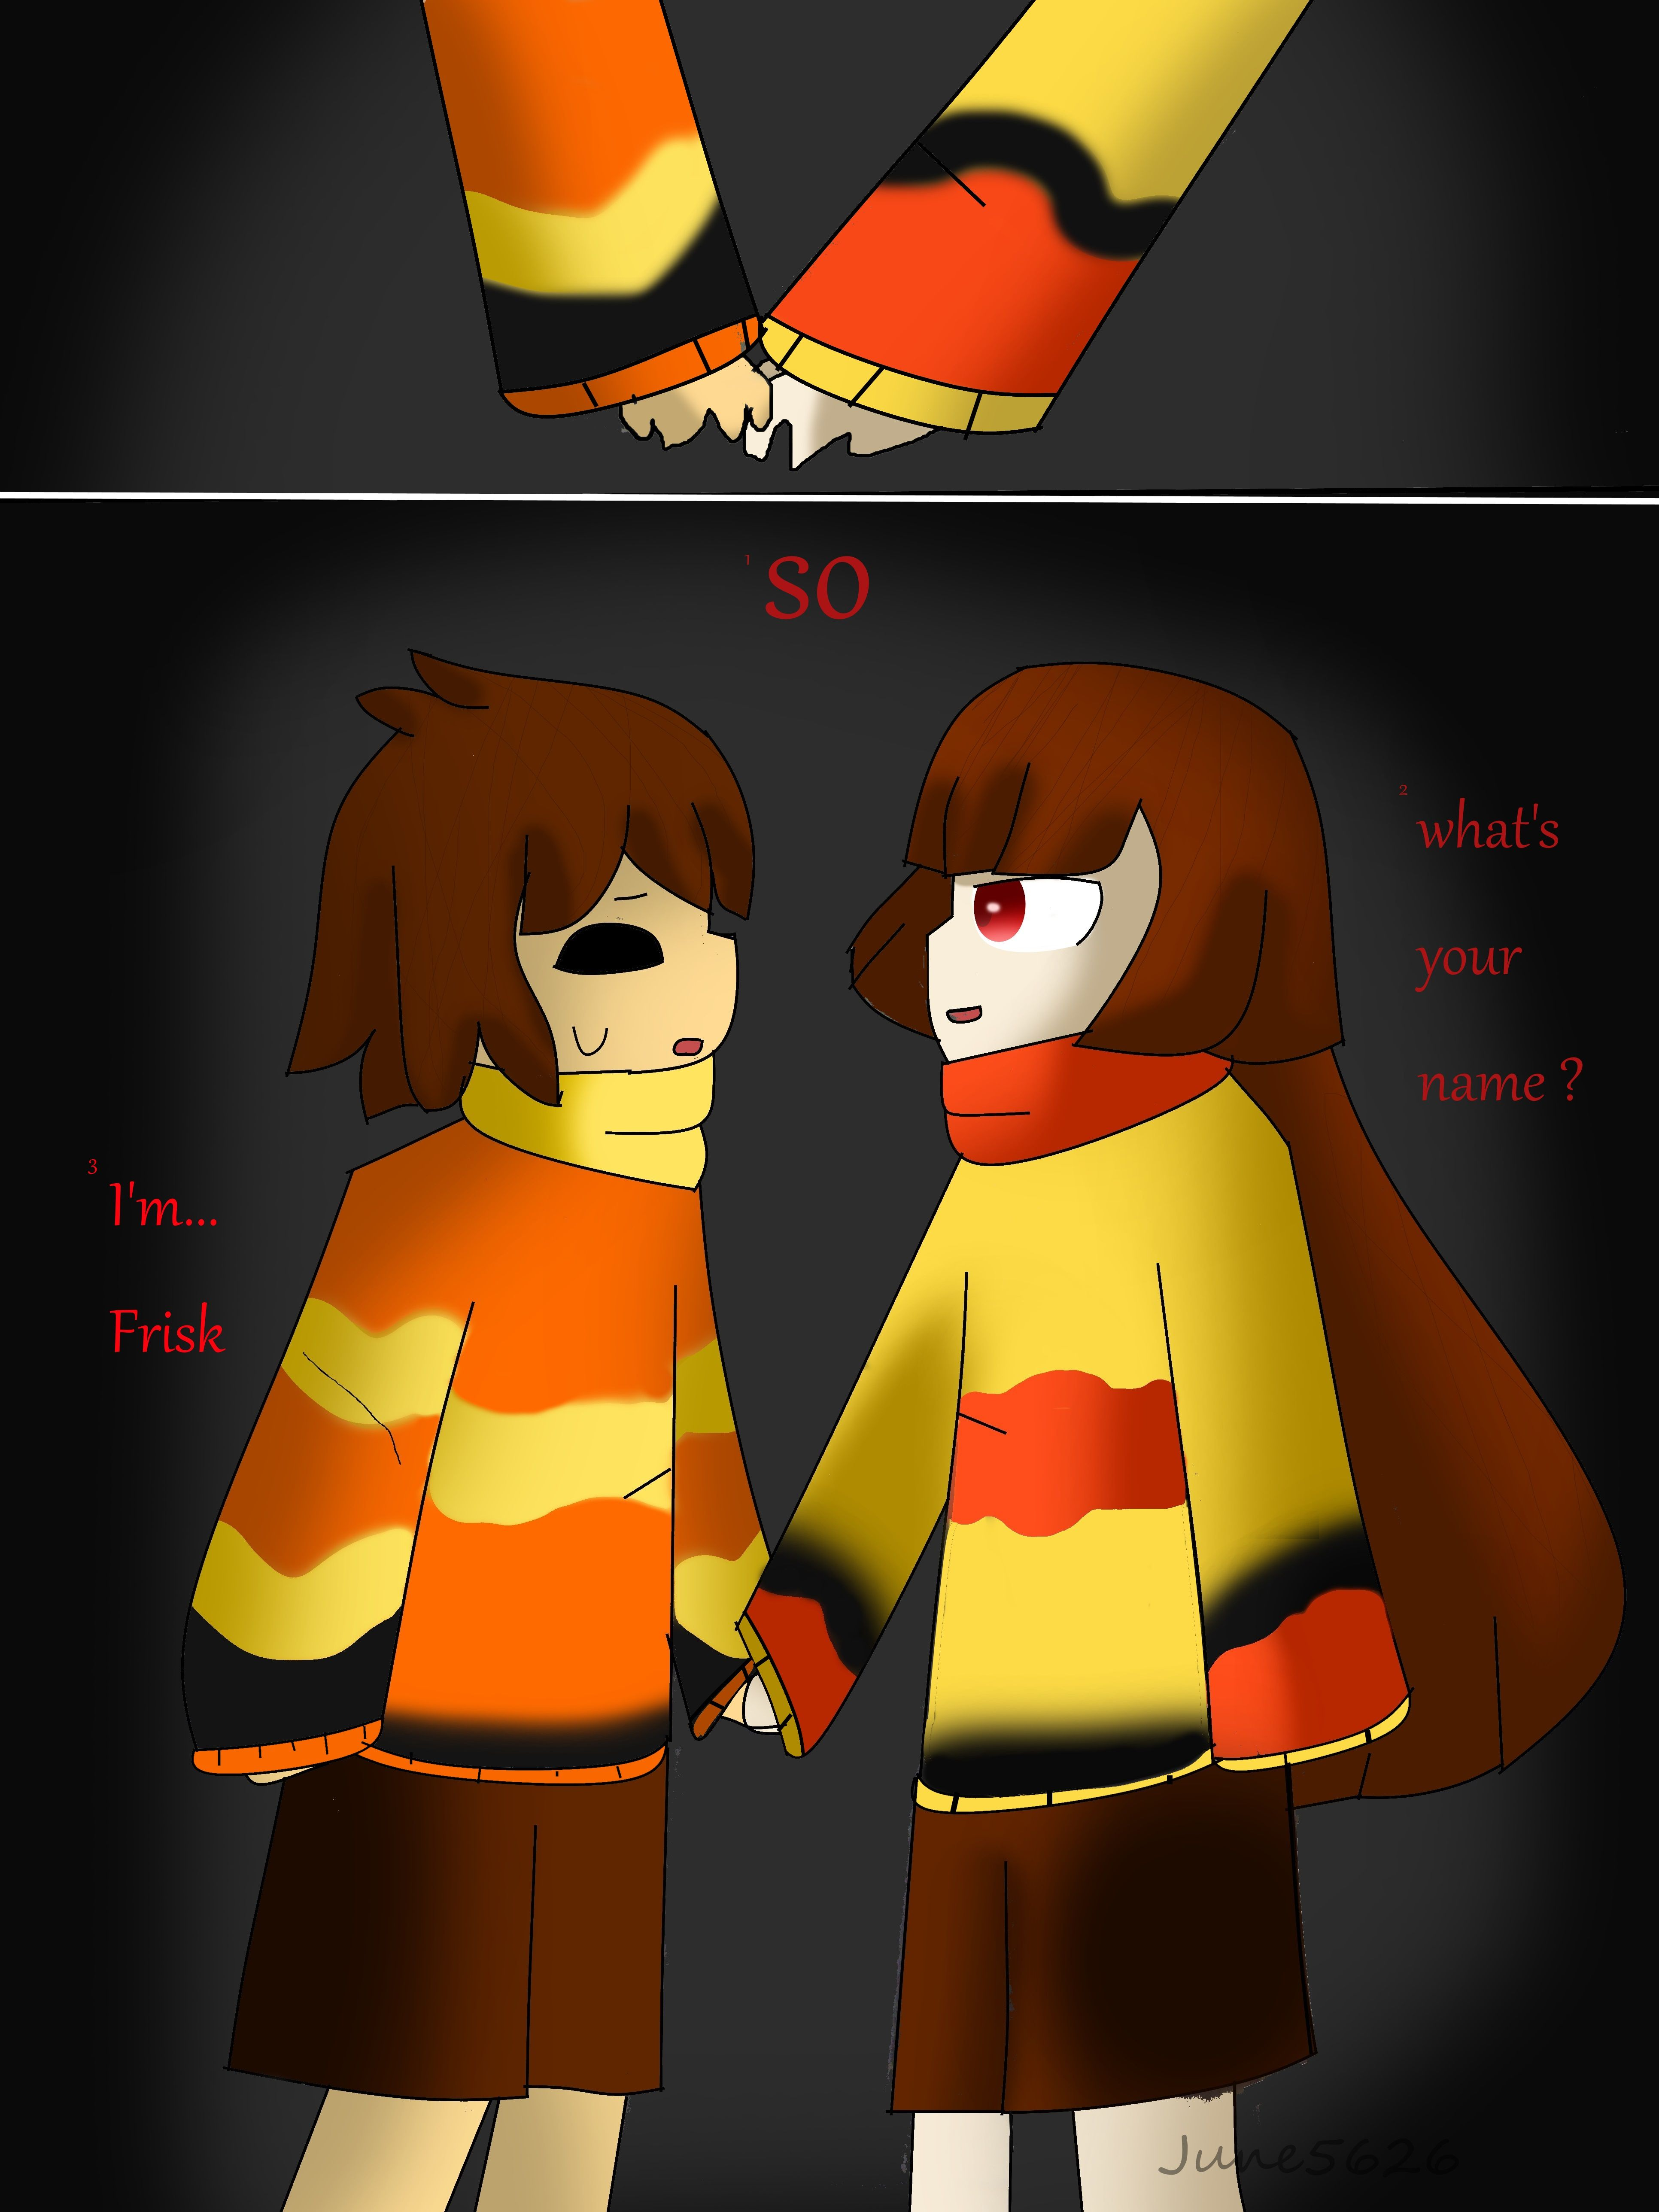 (made by me) FireTale page 2 chapter 1 : the ruine